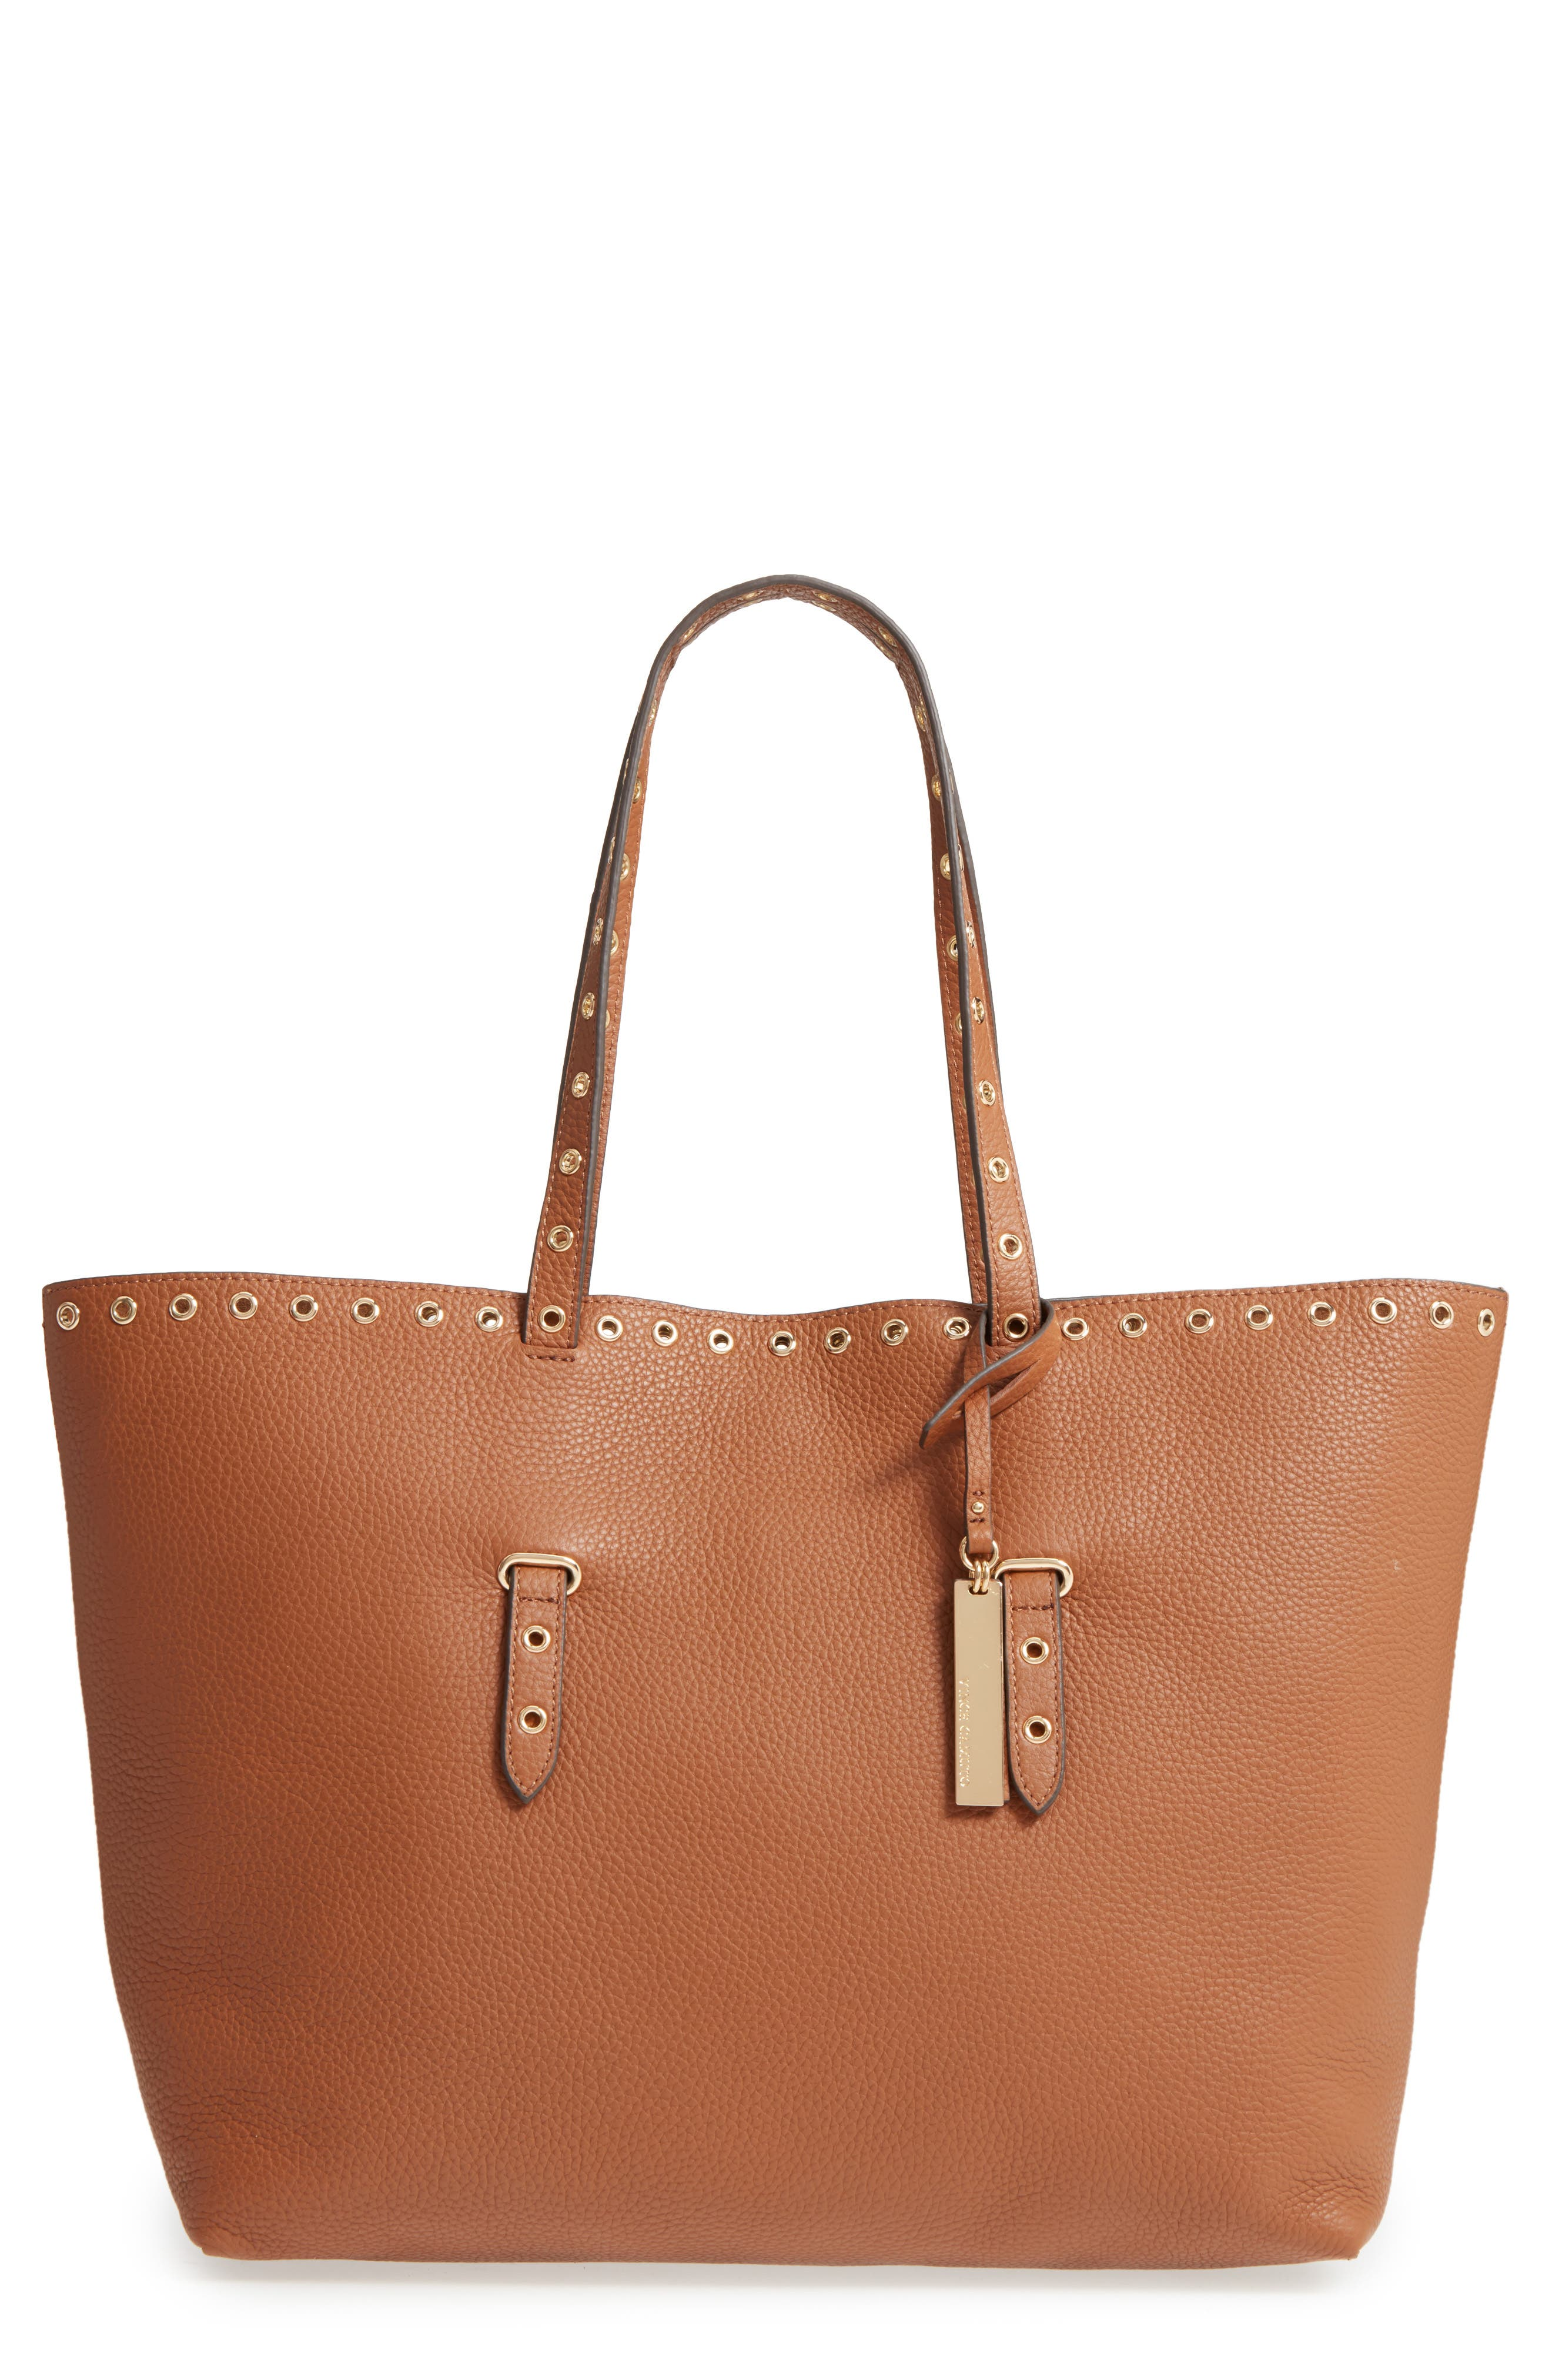 Main Image - Vince Camuto Areli Leather Tote